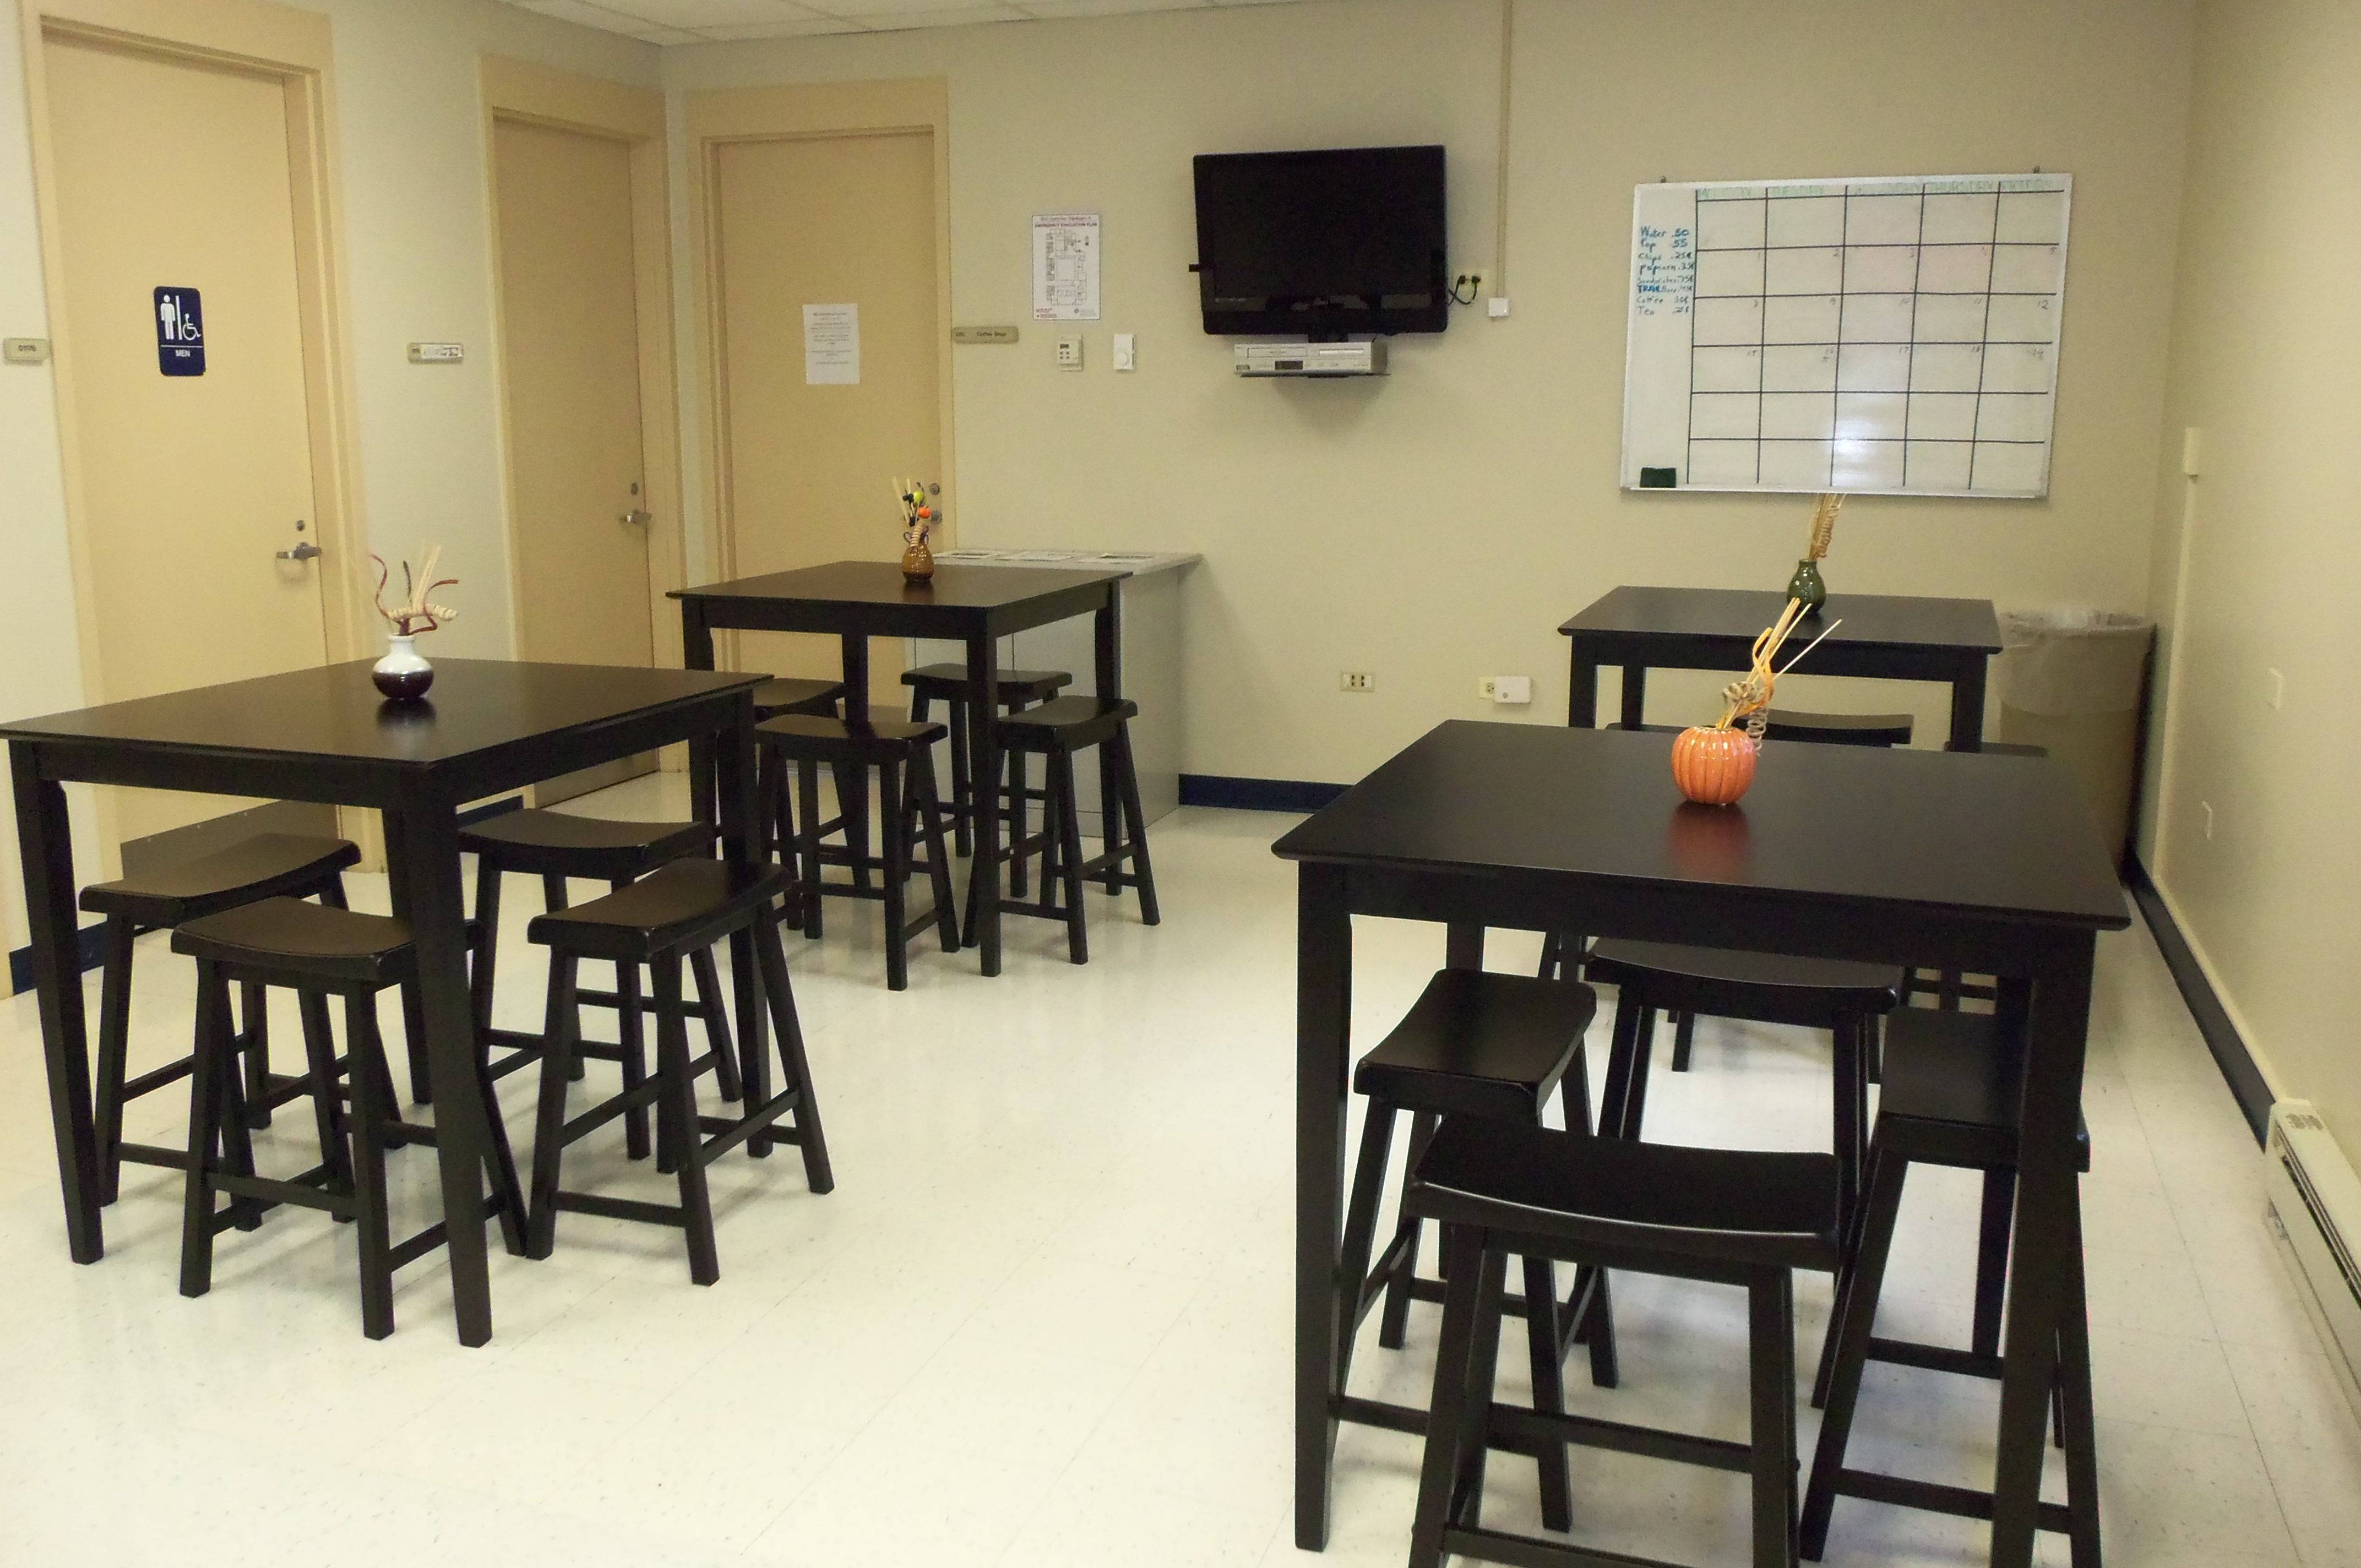 Individuals in the program can socialize in a coffee-shop setting created inside a facility located at the Health Department campus, 3010 Grand Avenue, in Waukegan.